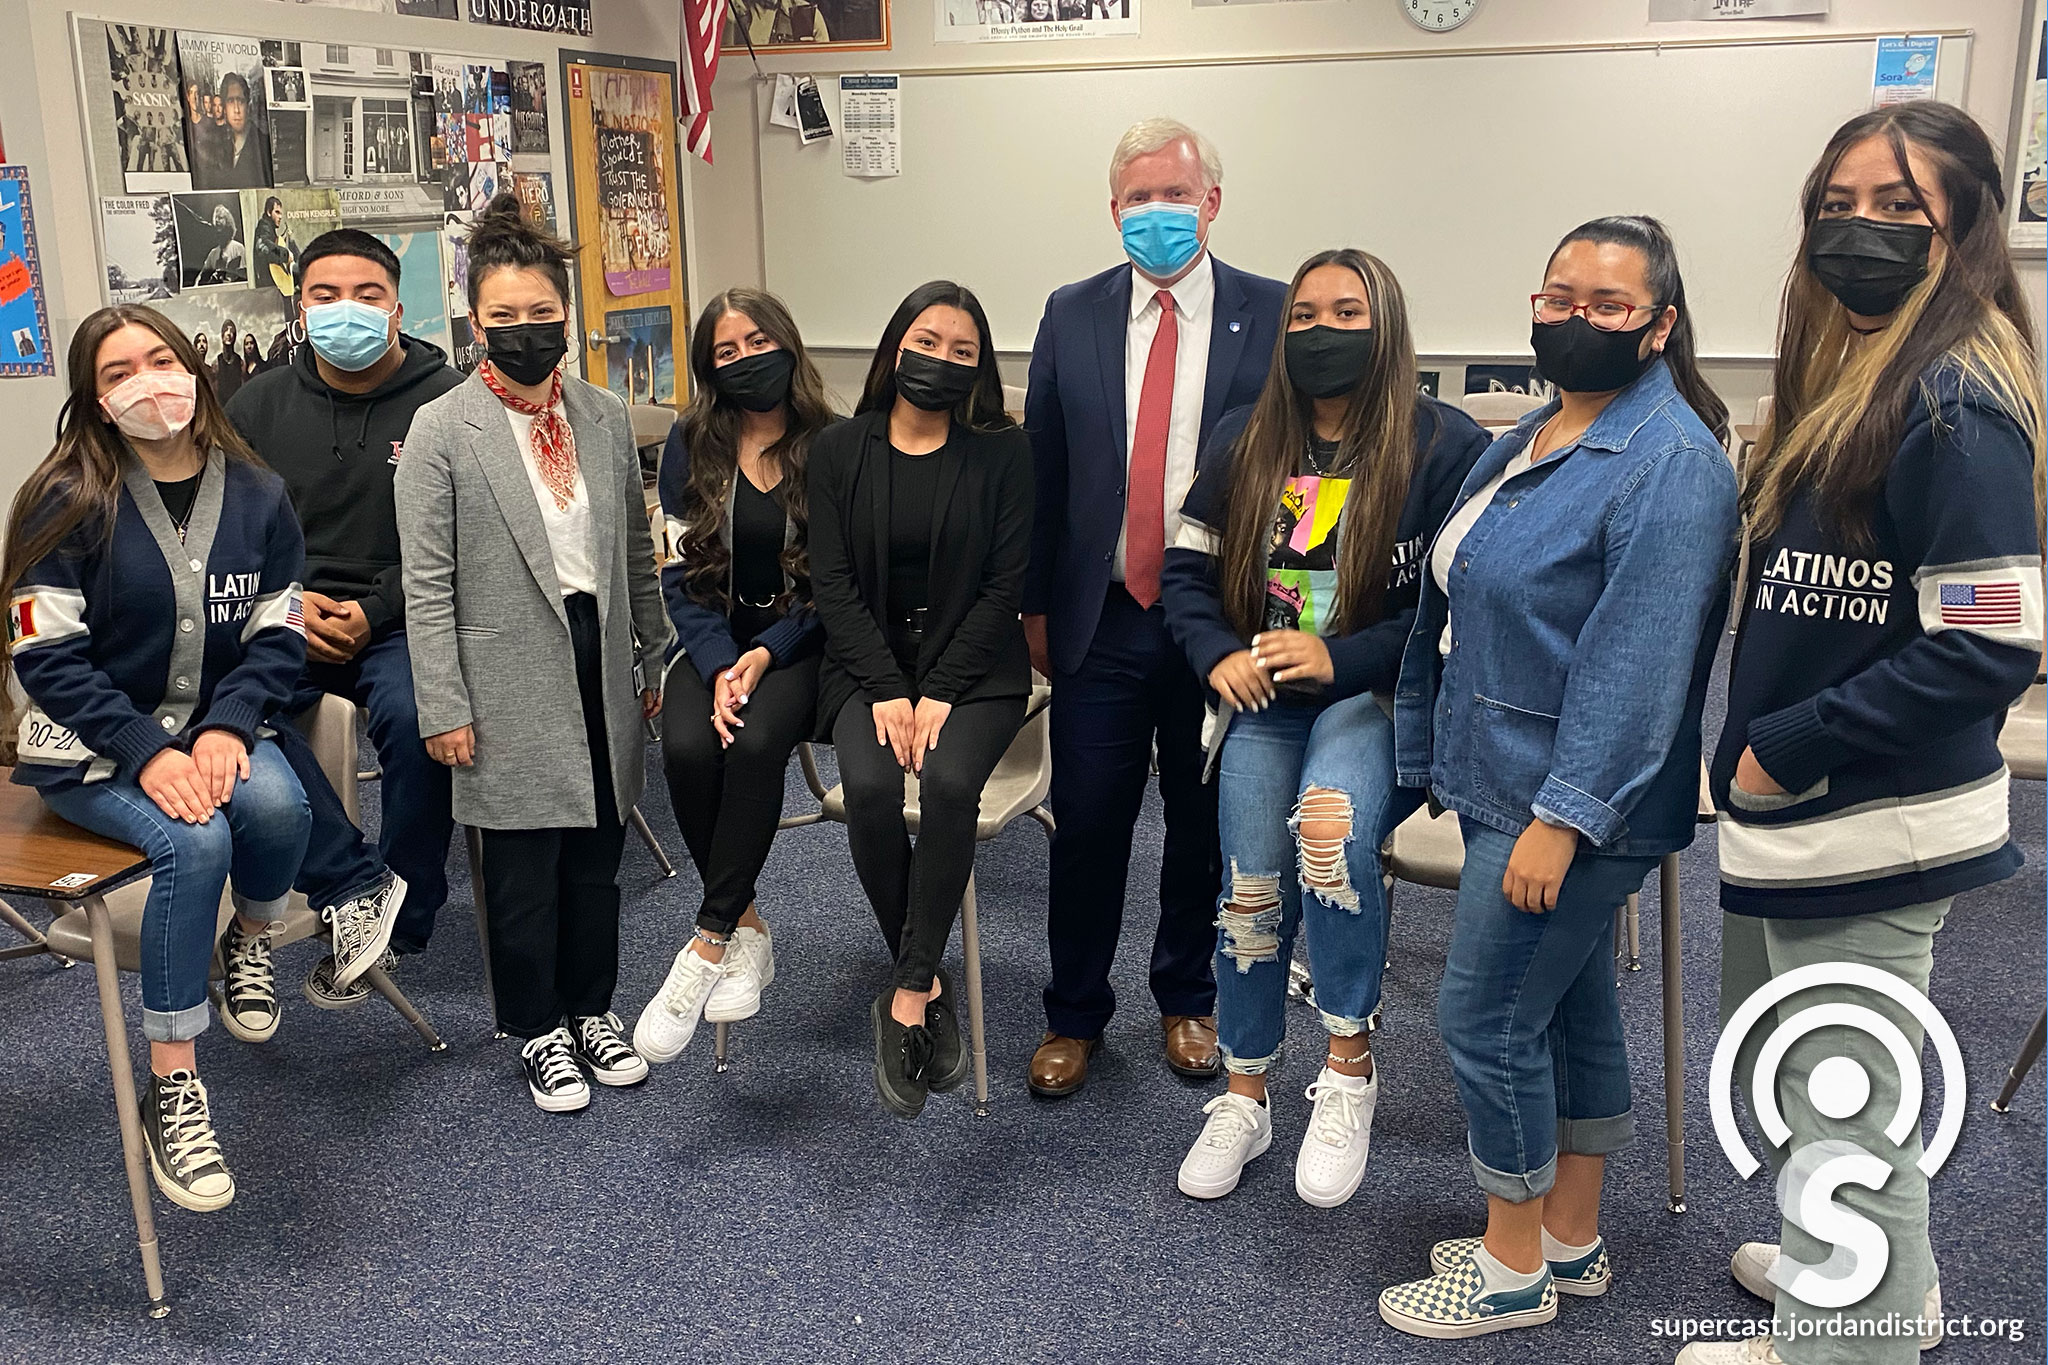 CHHS Latinos in Action with Superintendent Godfrey